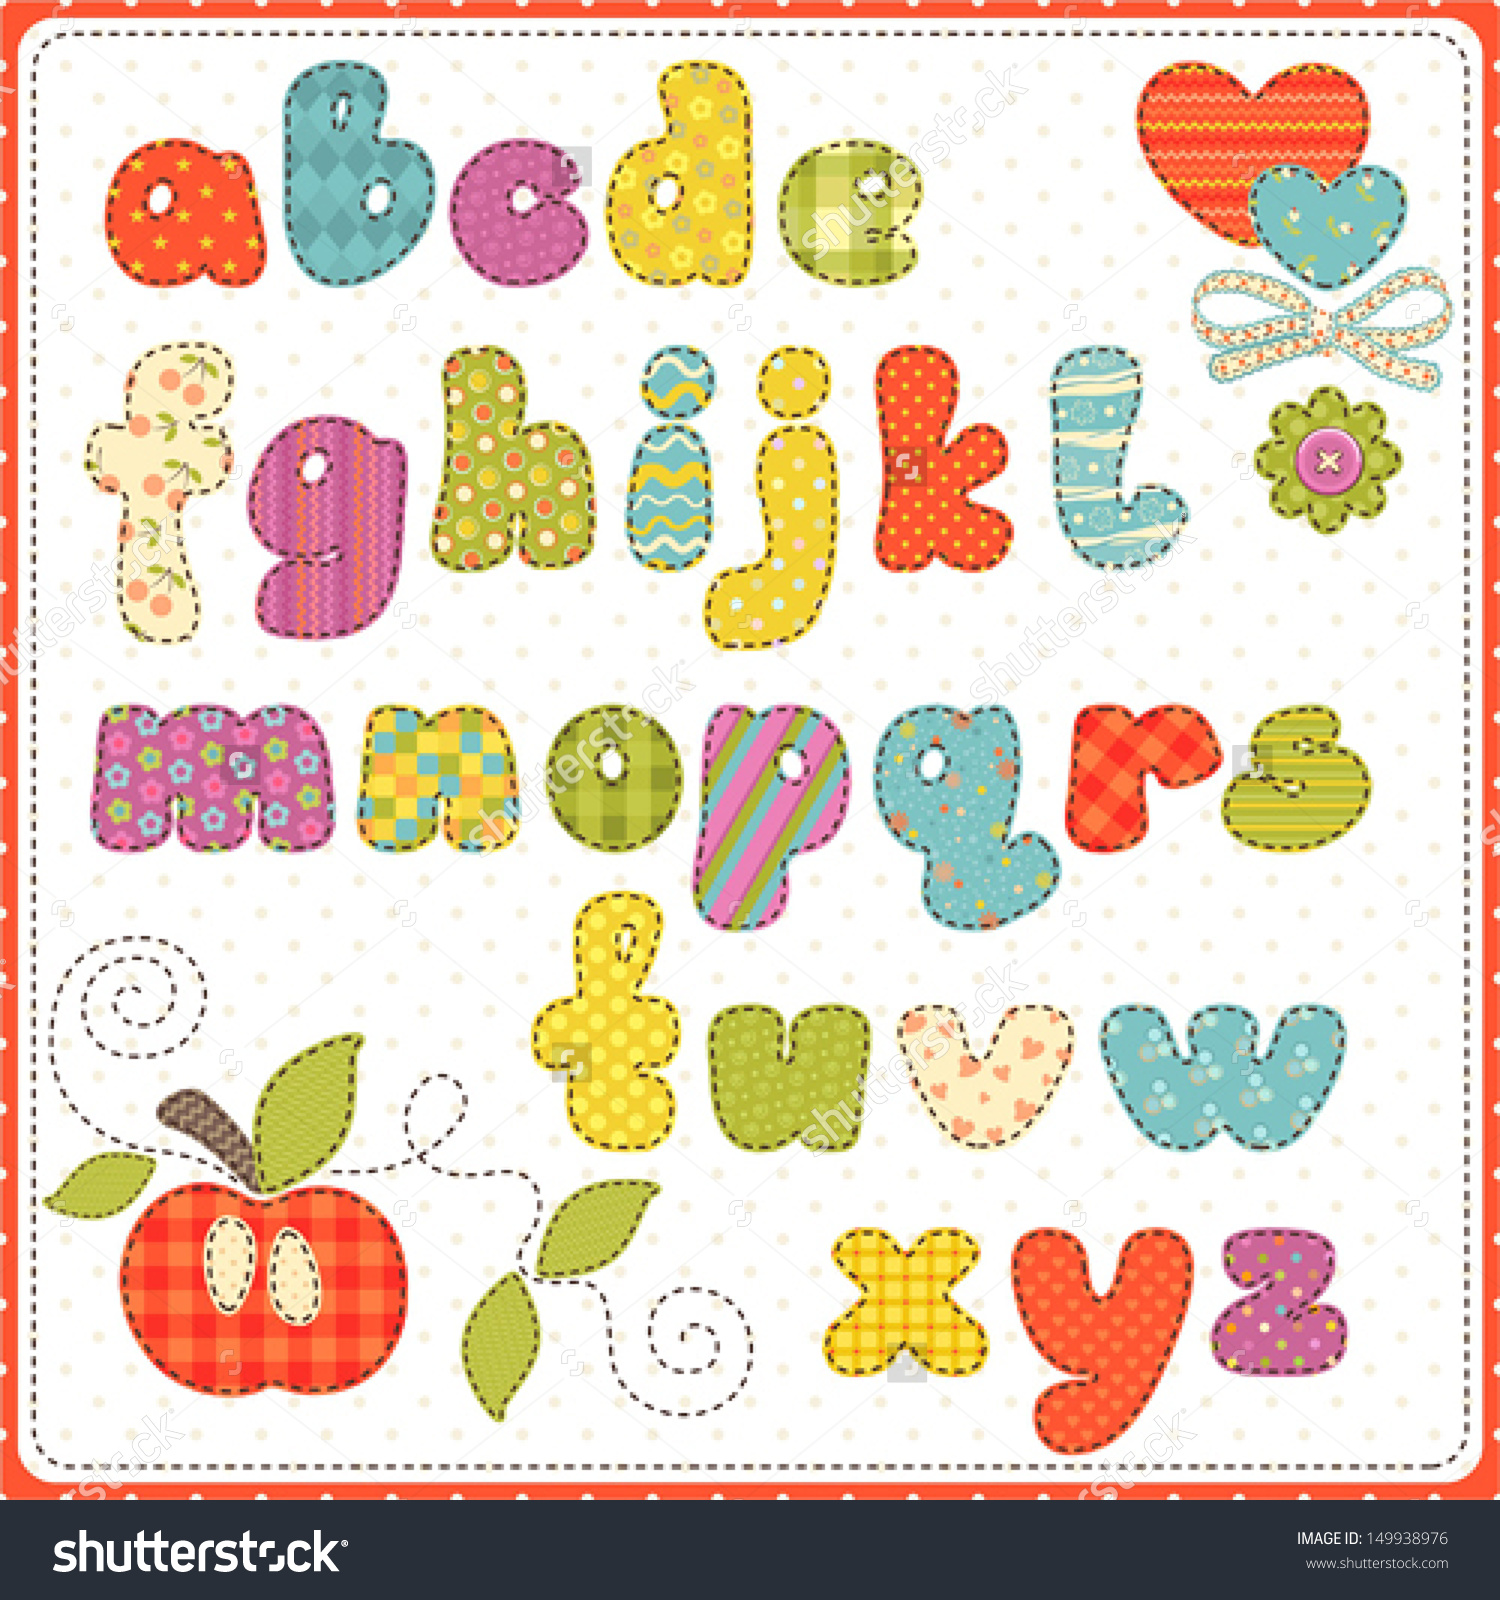 Small alphabet letter clipart picture royalty free download Colorful Children Alphabet Small Letters Stock Vector 149938976 ... picture royalty free download